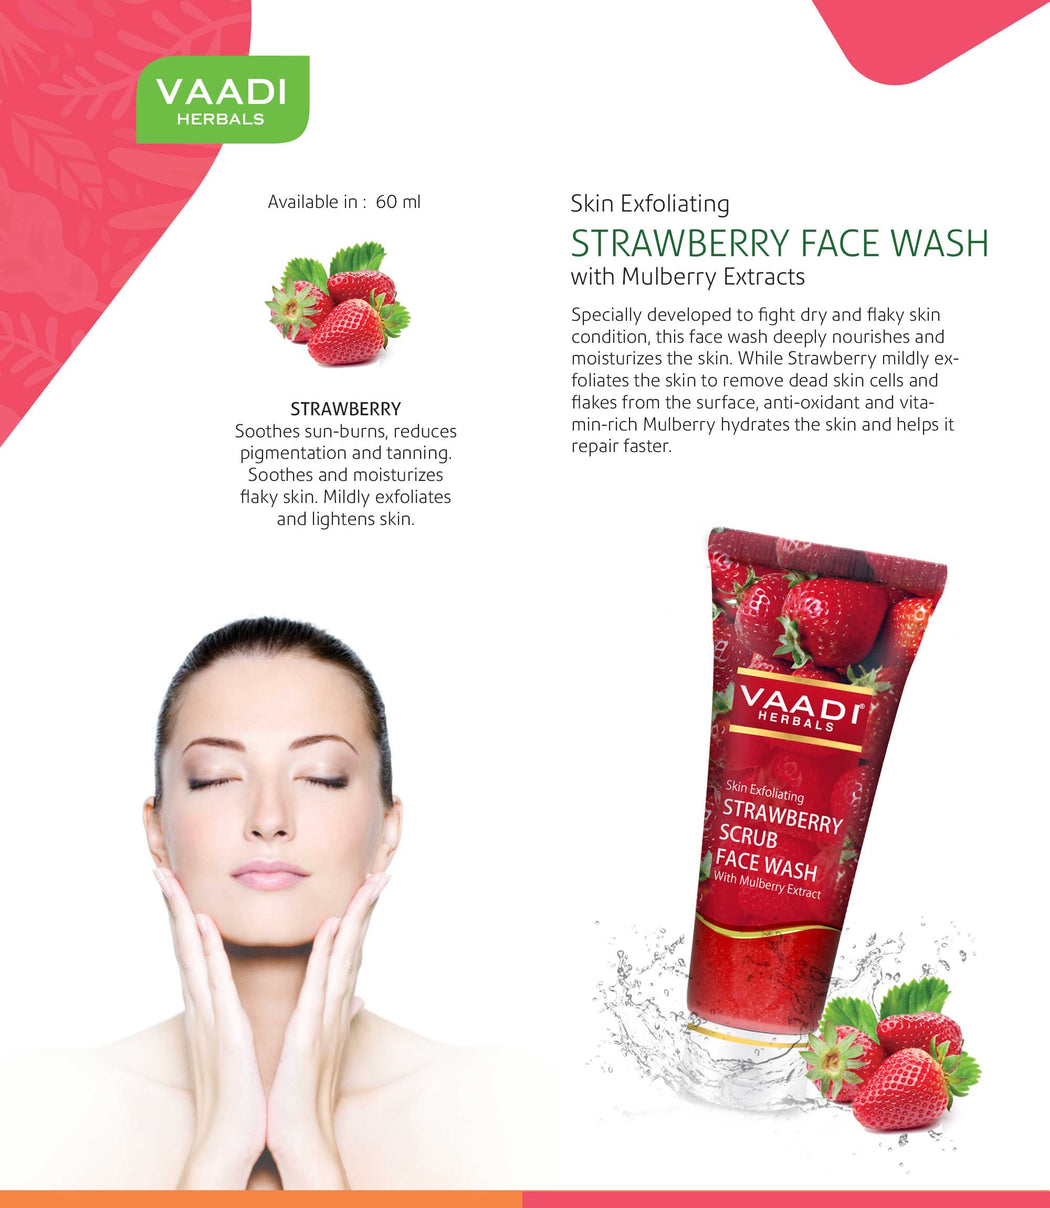 Skin Exfoliating Organic Strawberry Scrub Face Wash with Mulberry Extract (4 x 60ml/ 21.1 fl oz)